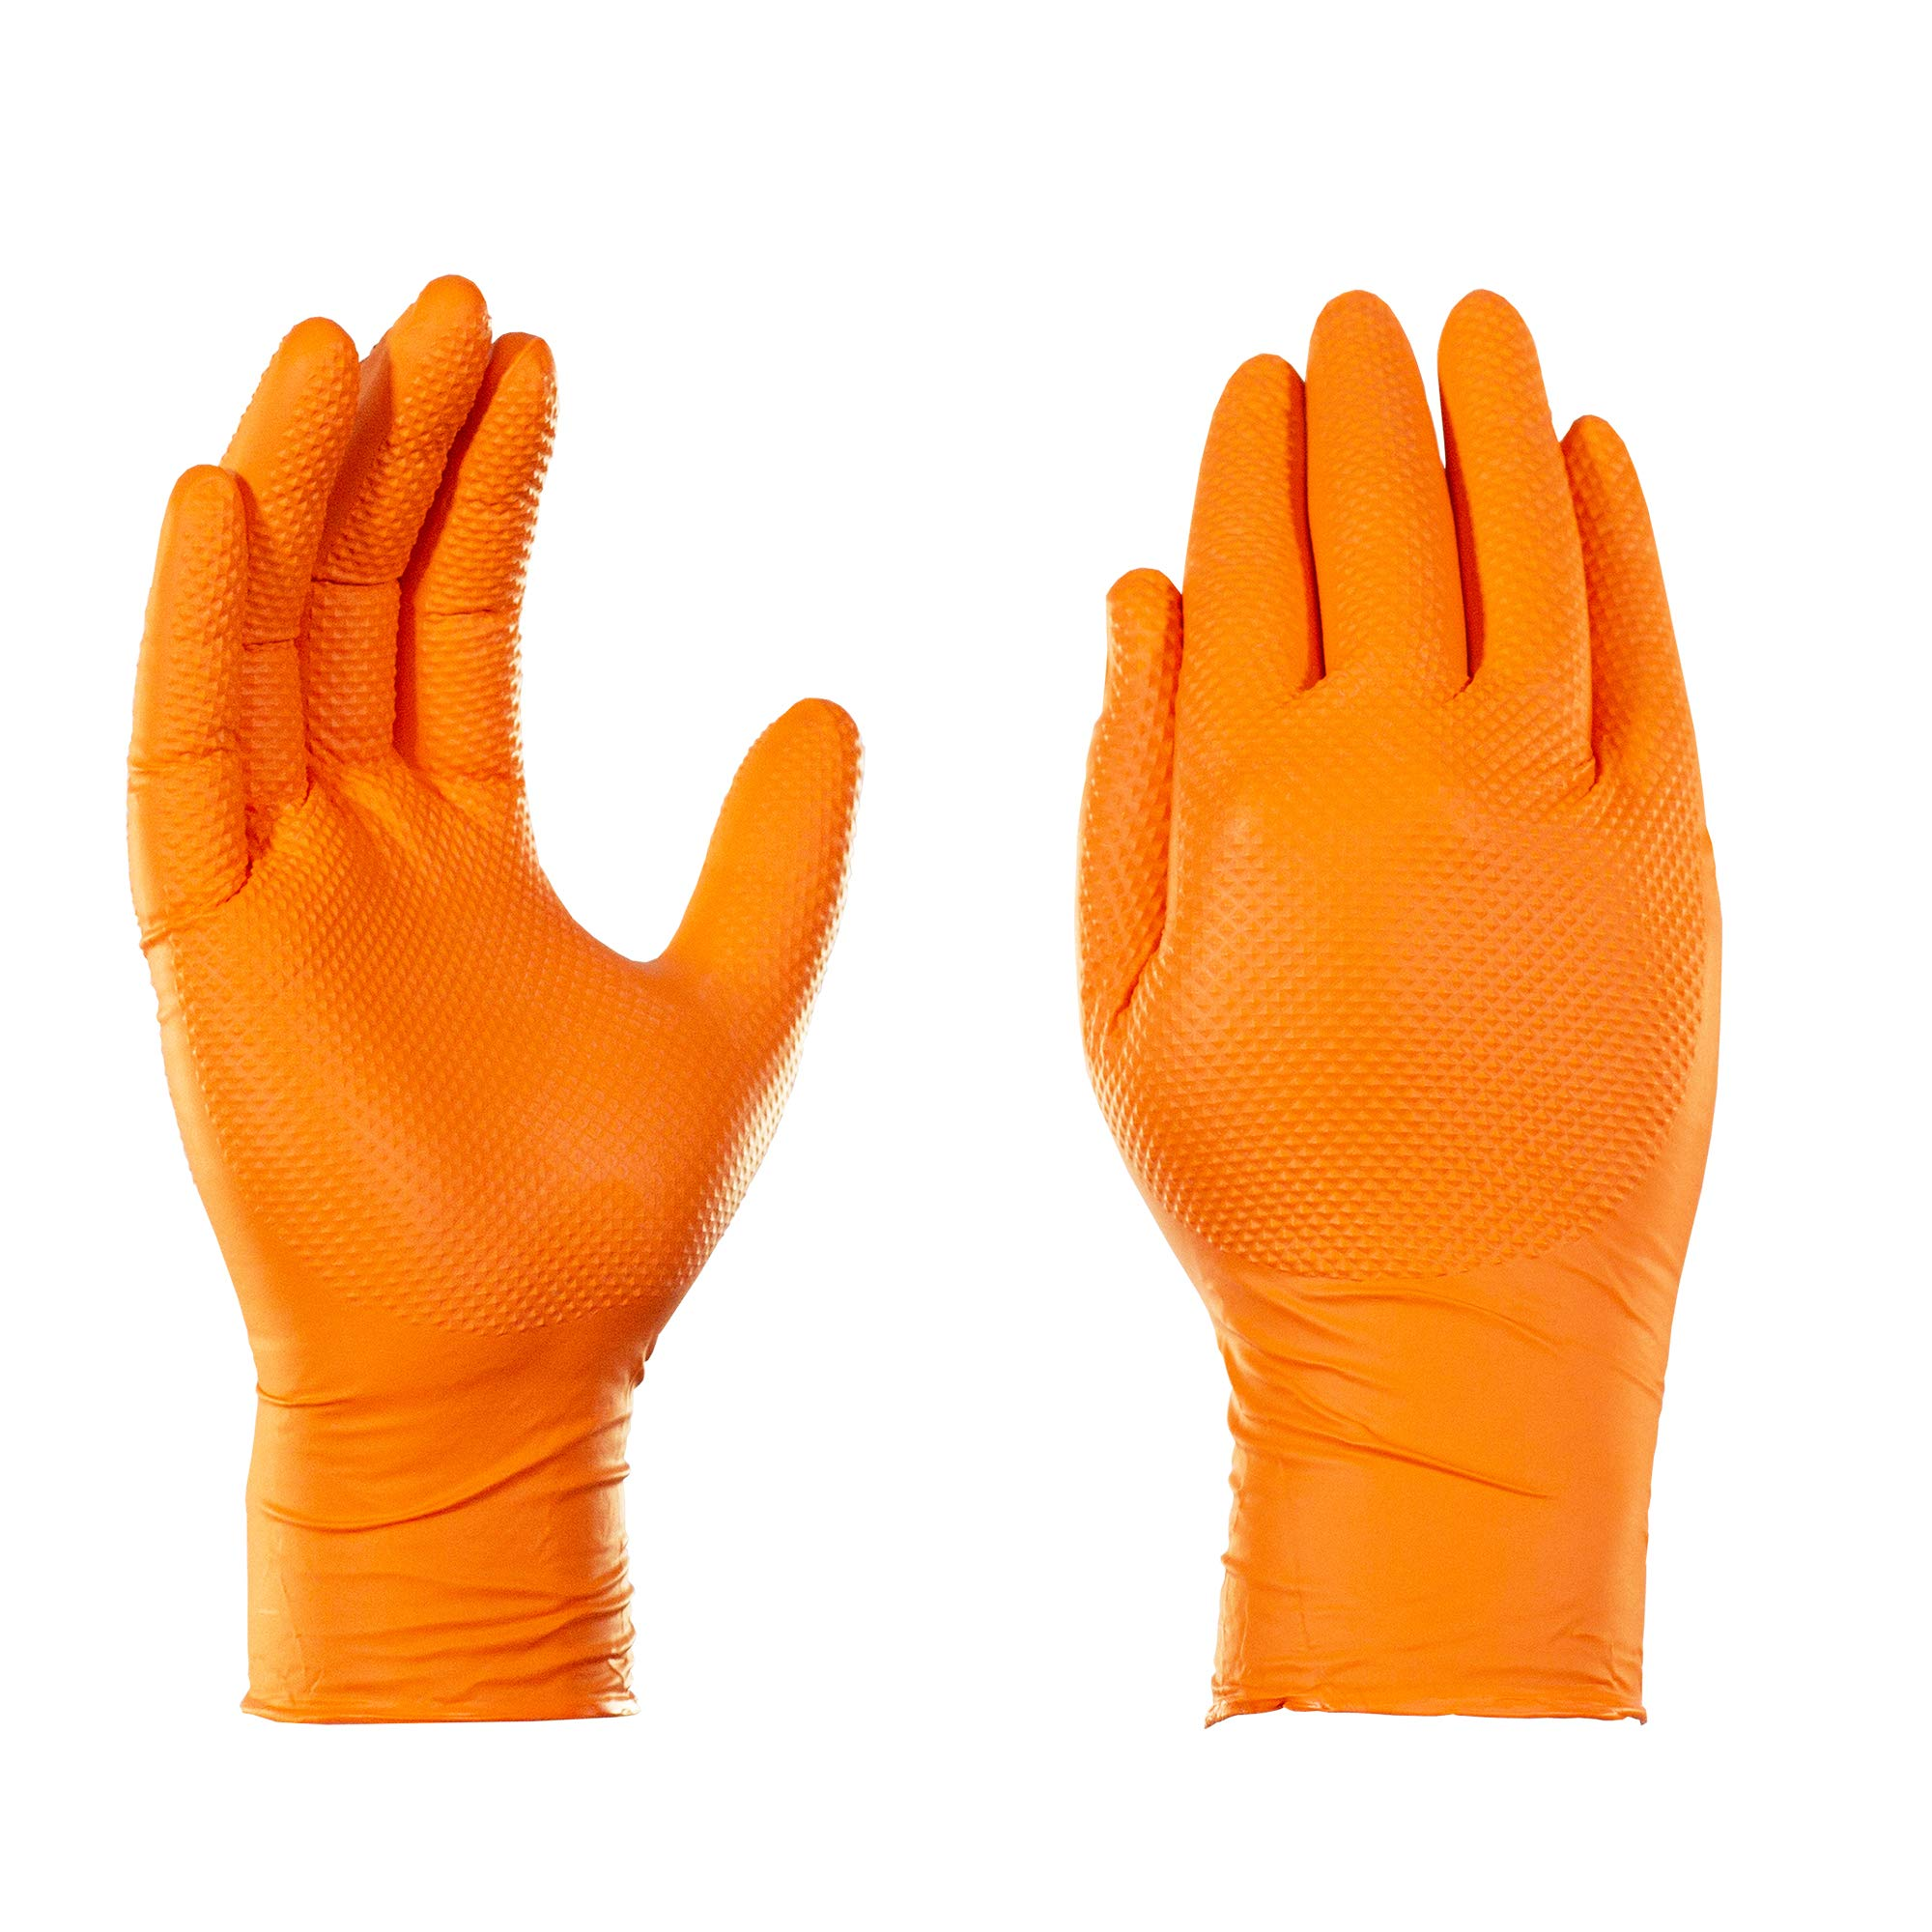 AMMEX - GWON44100 - Nitrile Gloves - Gloveworks, Heavy Duty, Disposable, Powder Free, Latex Rubber Free, 8 mil, Medium, Orange (Case of 1000) by Ammex (Image #1)